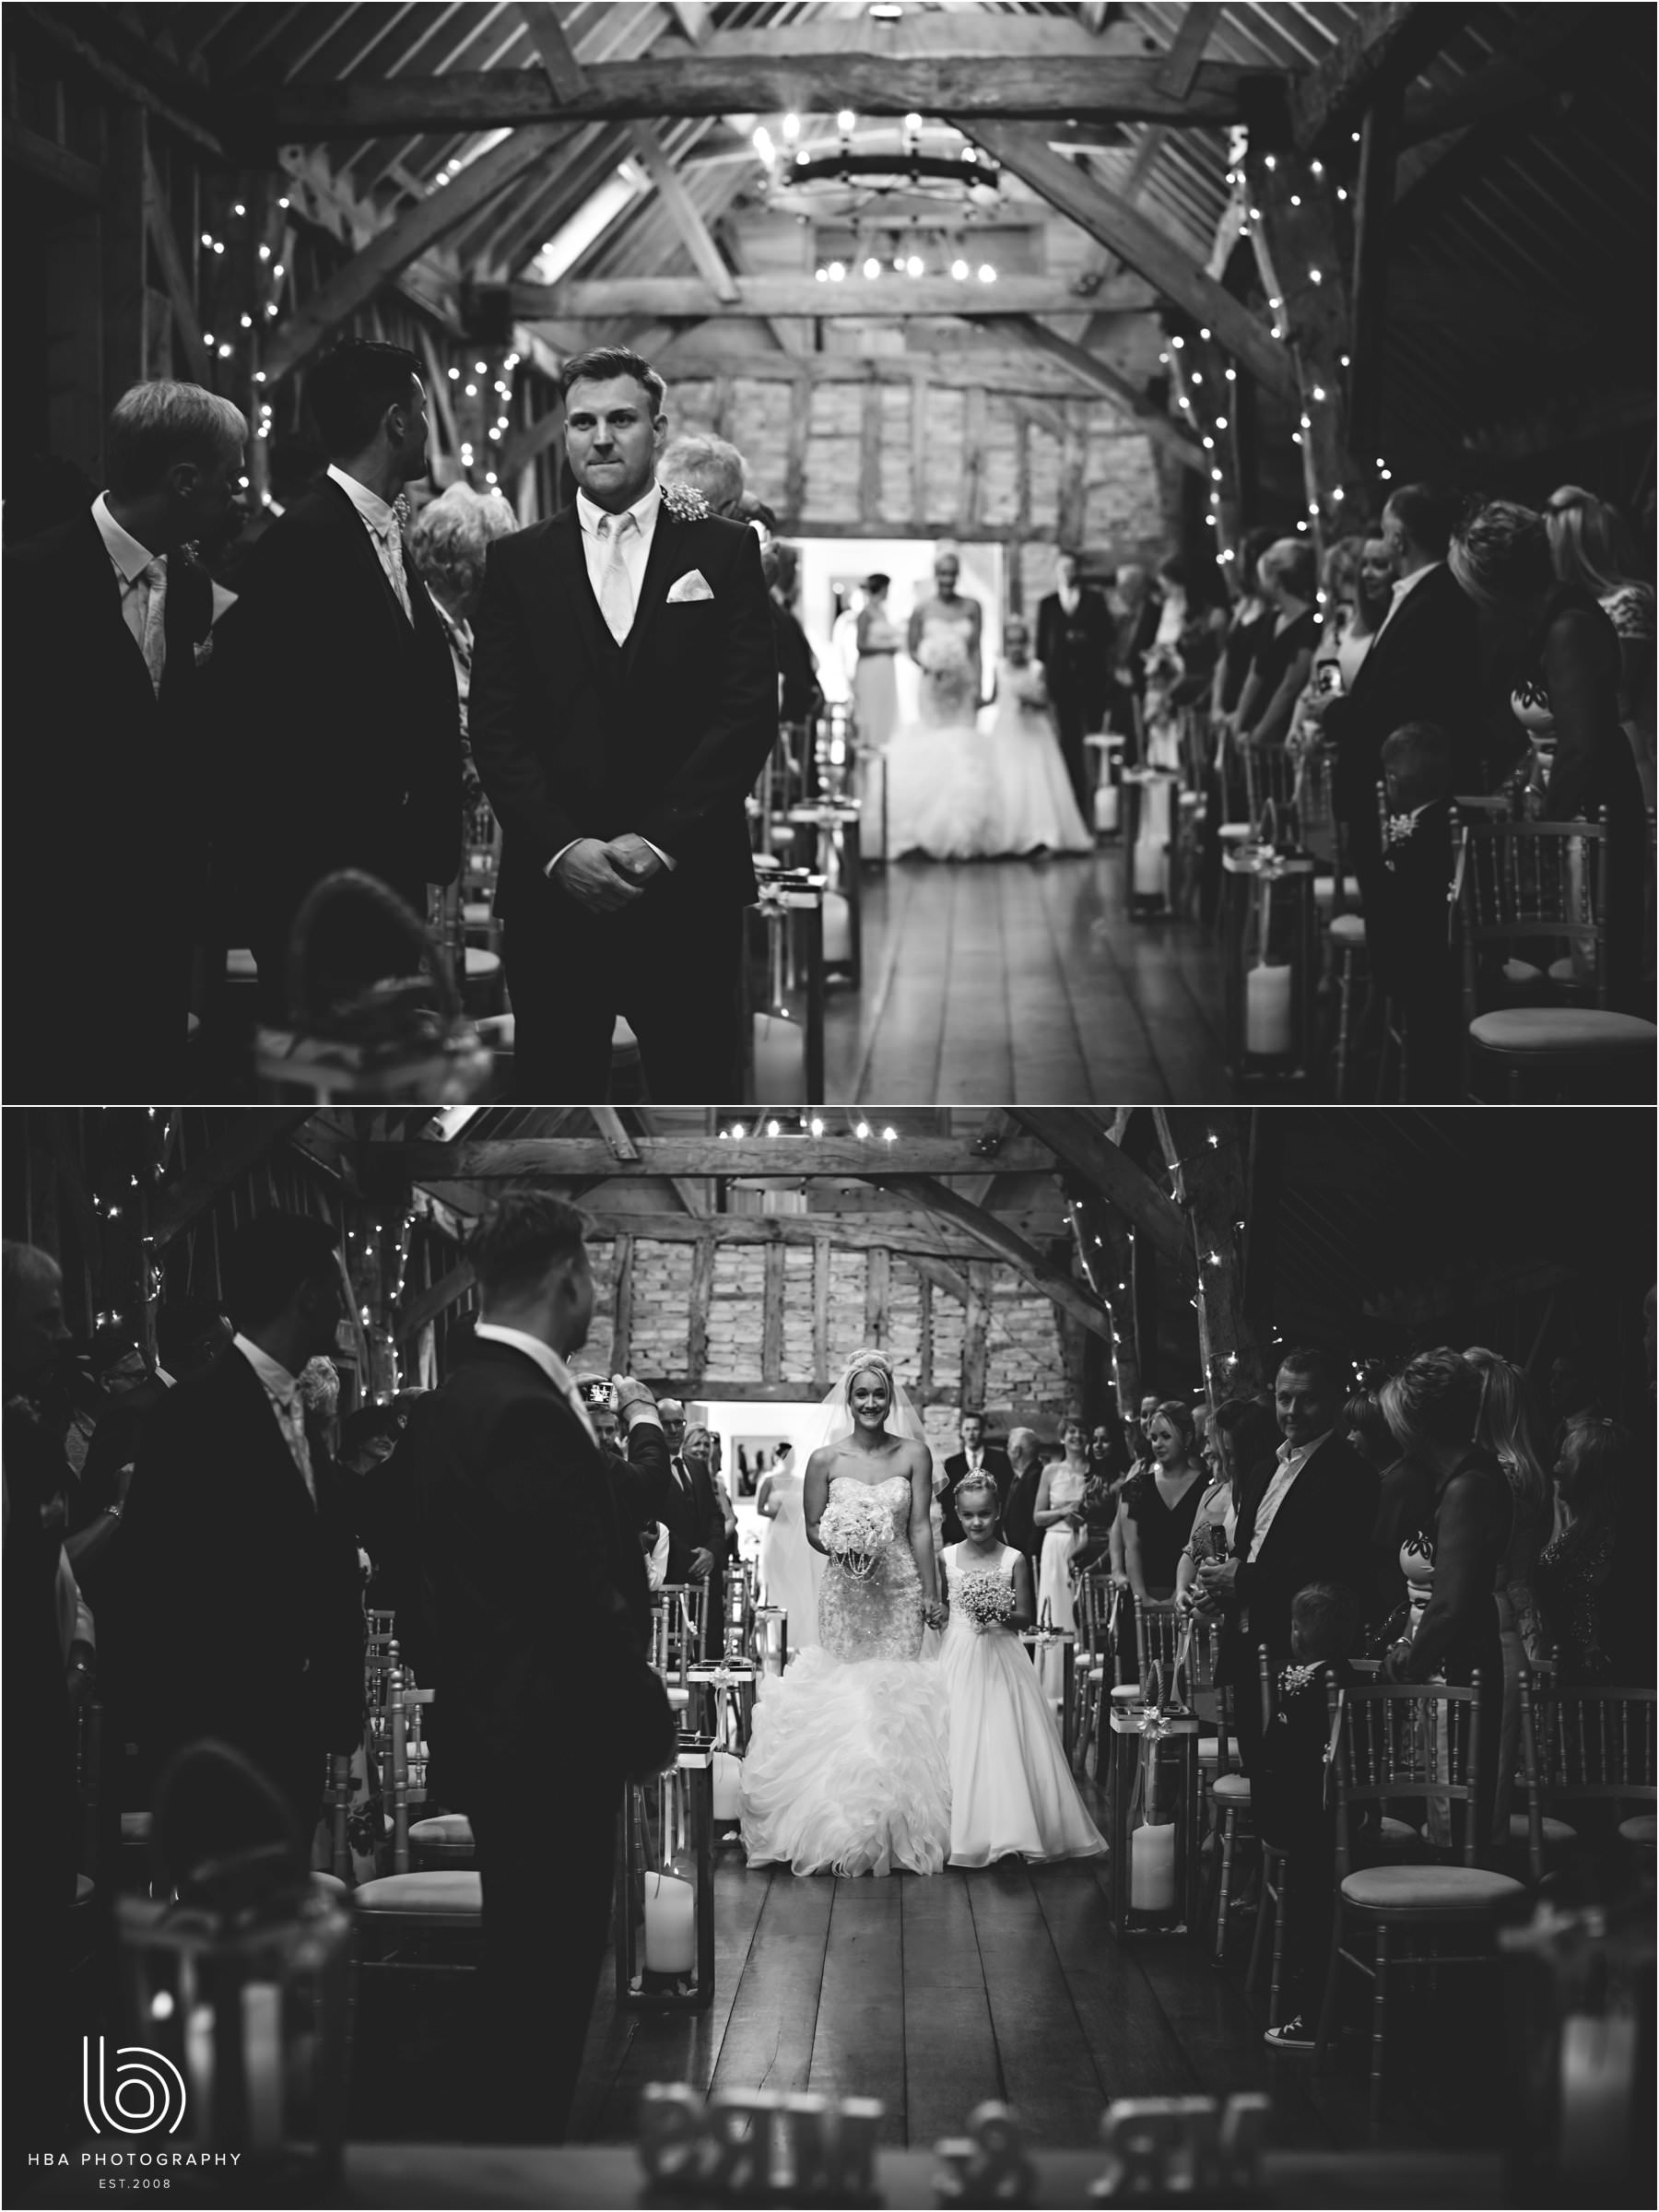 the bride walking down the aisle